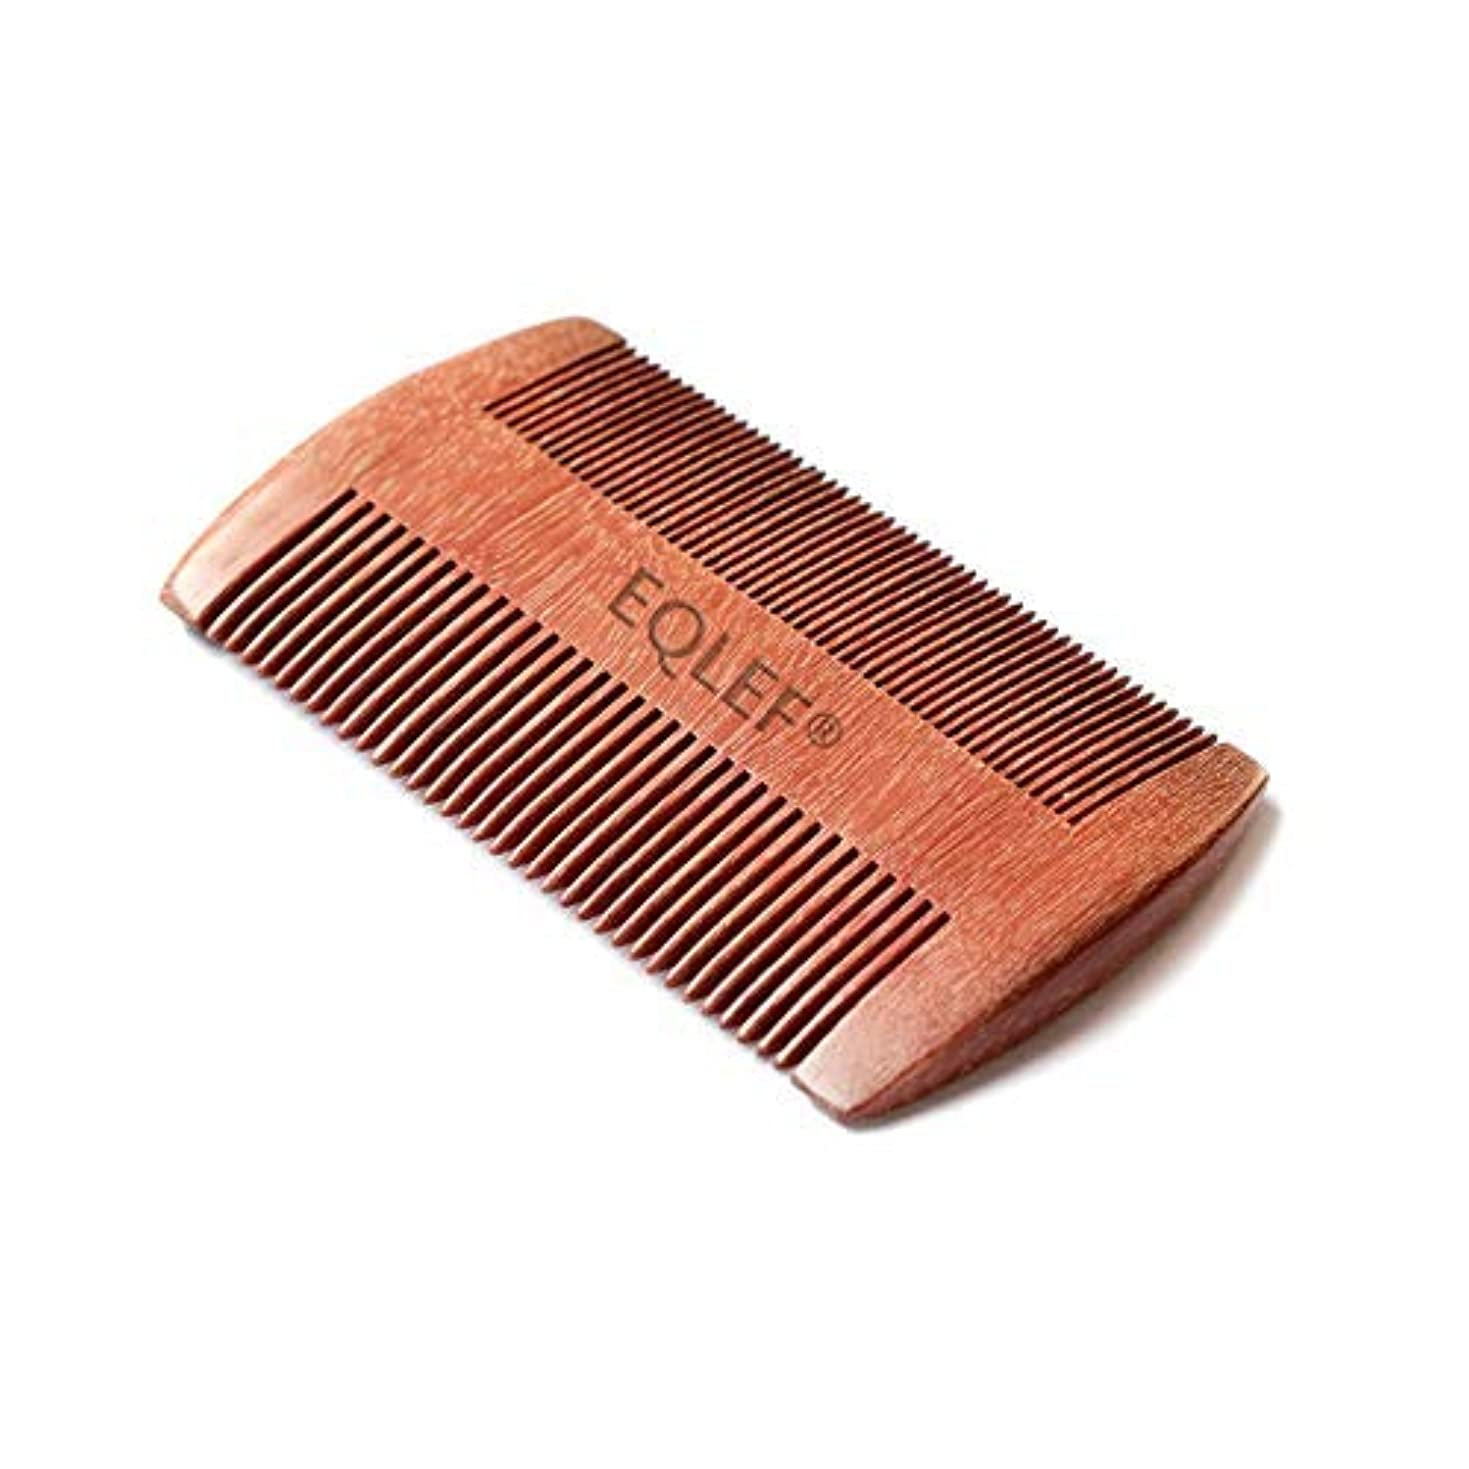 振動するピアース肌寒いEQLEF? Red sandalwood no static handmade comb, Pocket comb (beard) [並行輸入品]